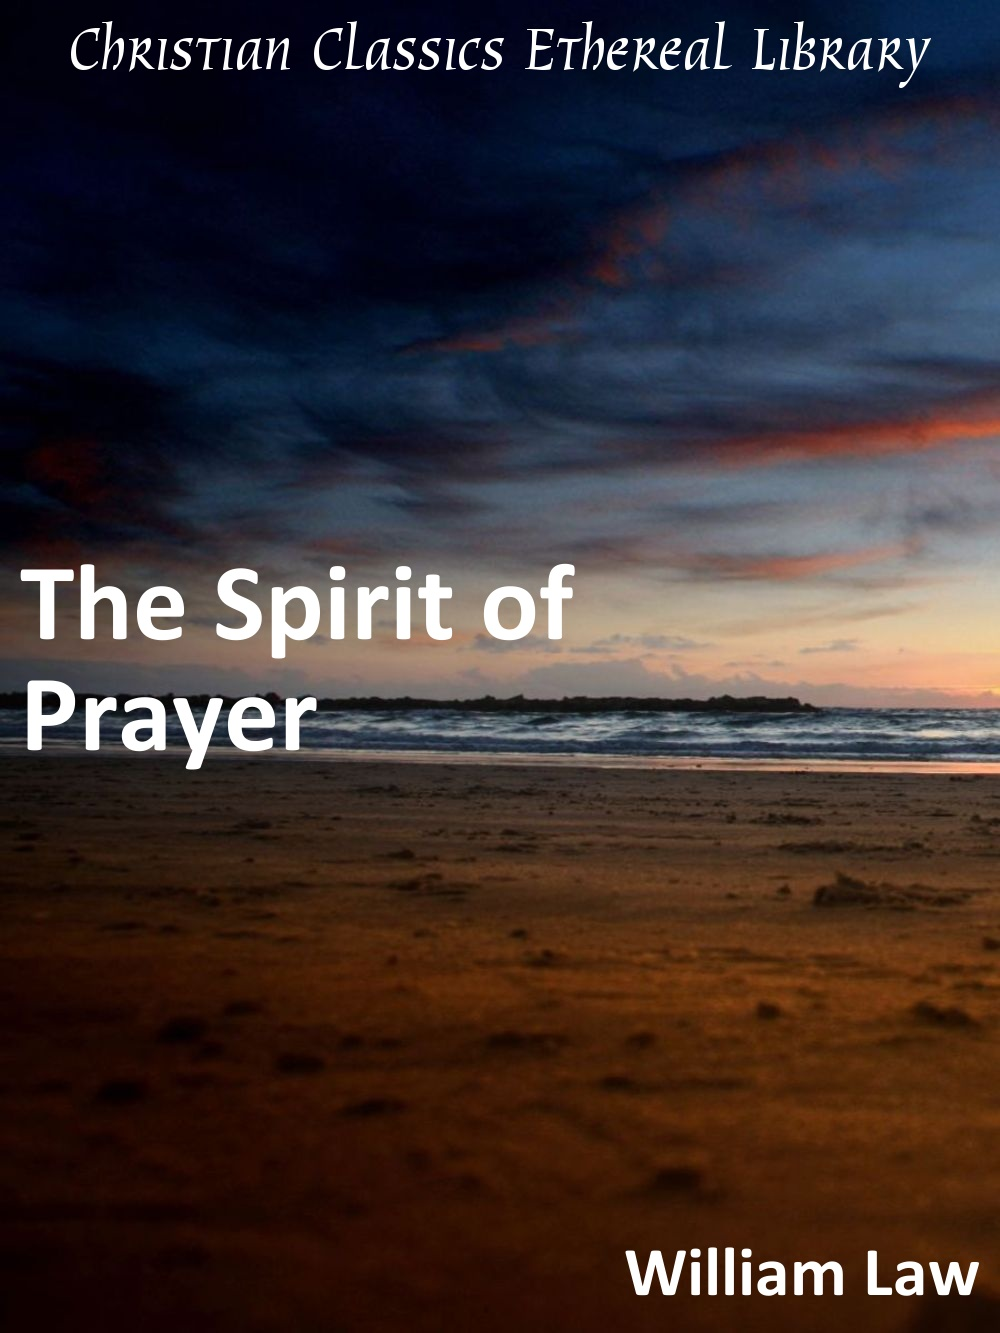 Read e-book The Spirit of Prayer